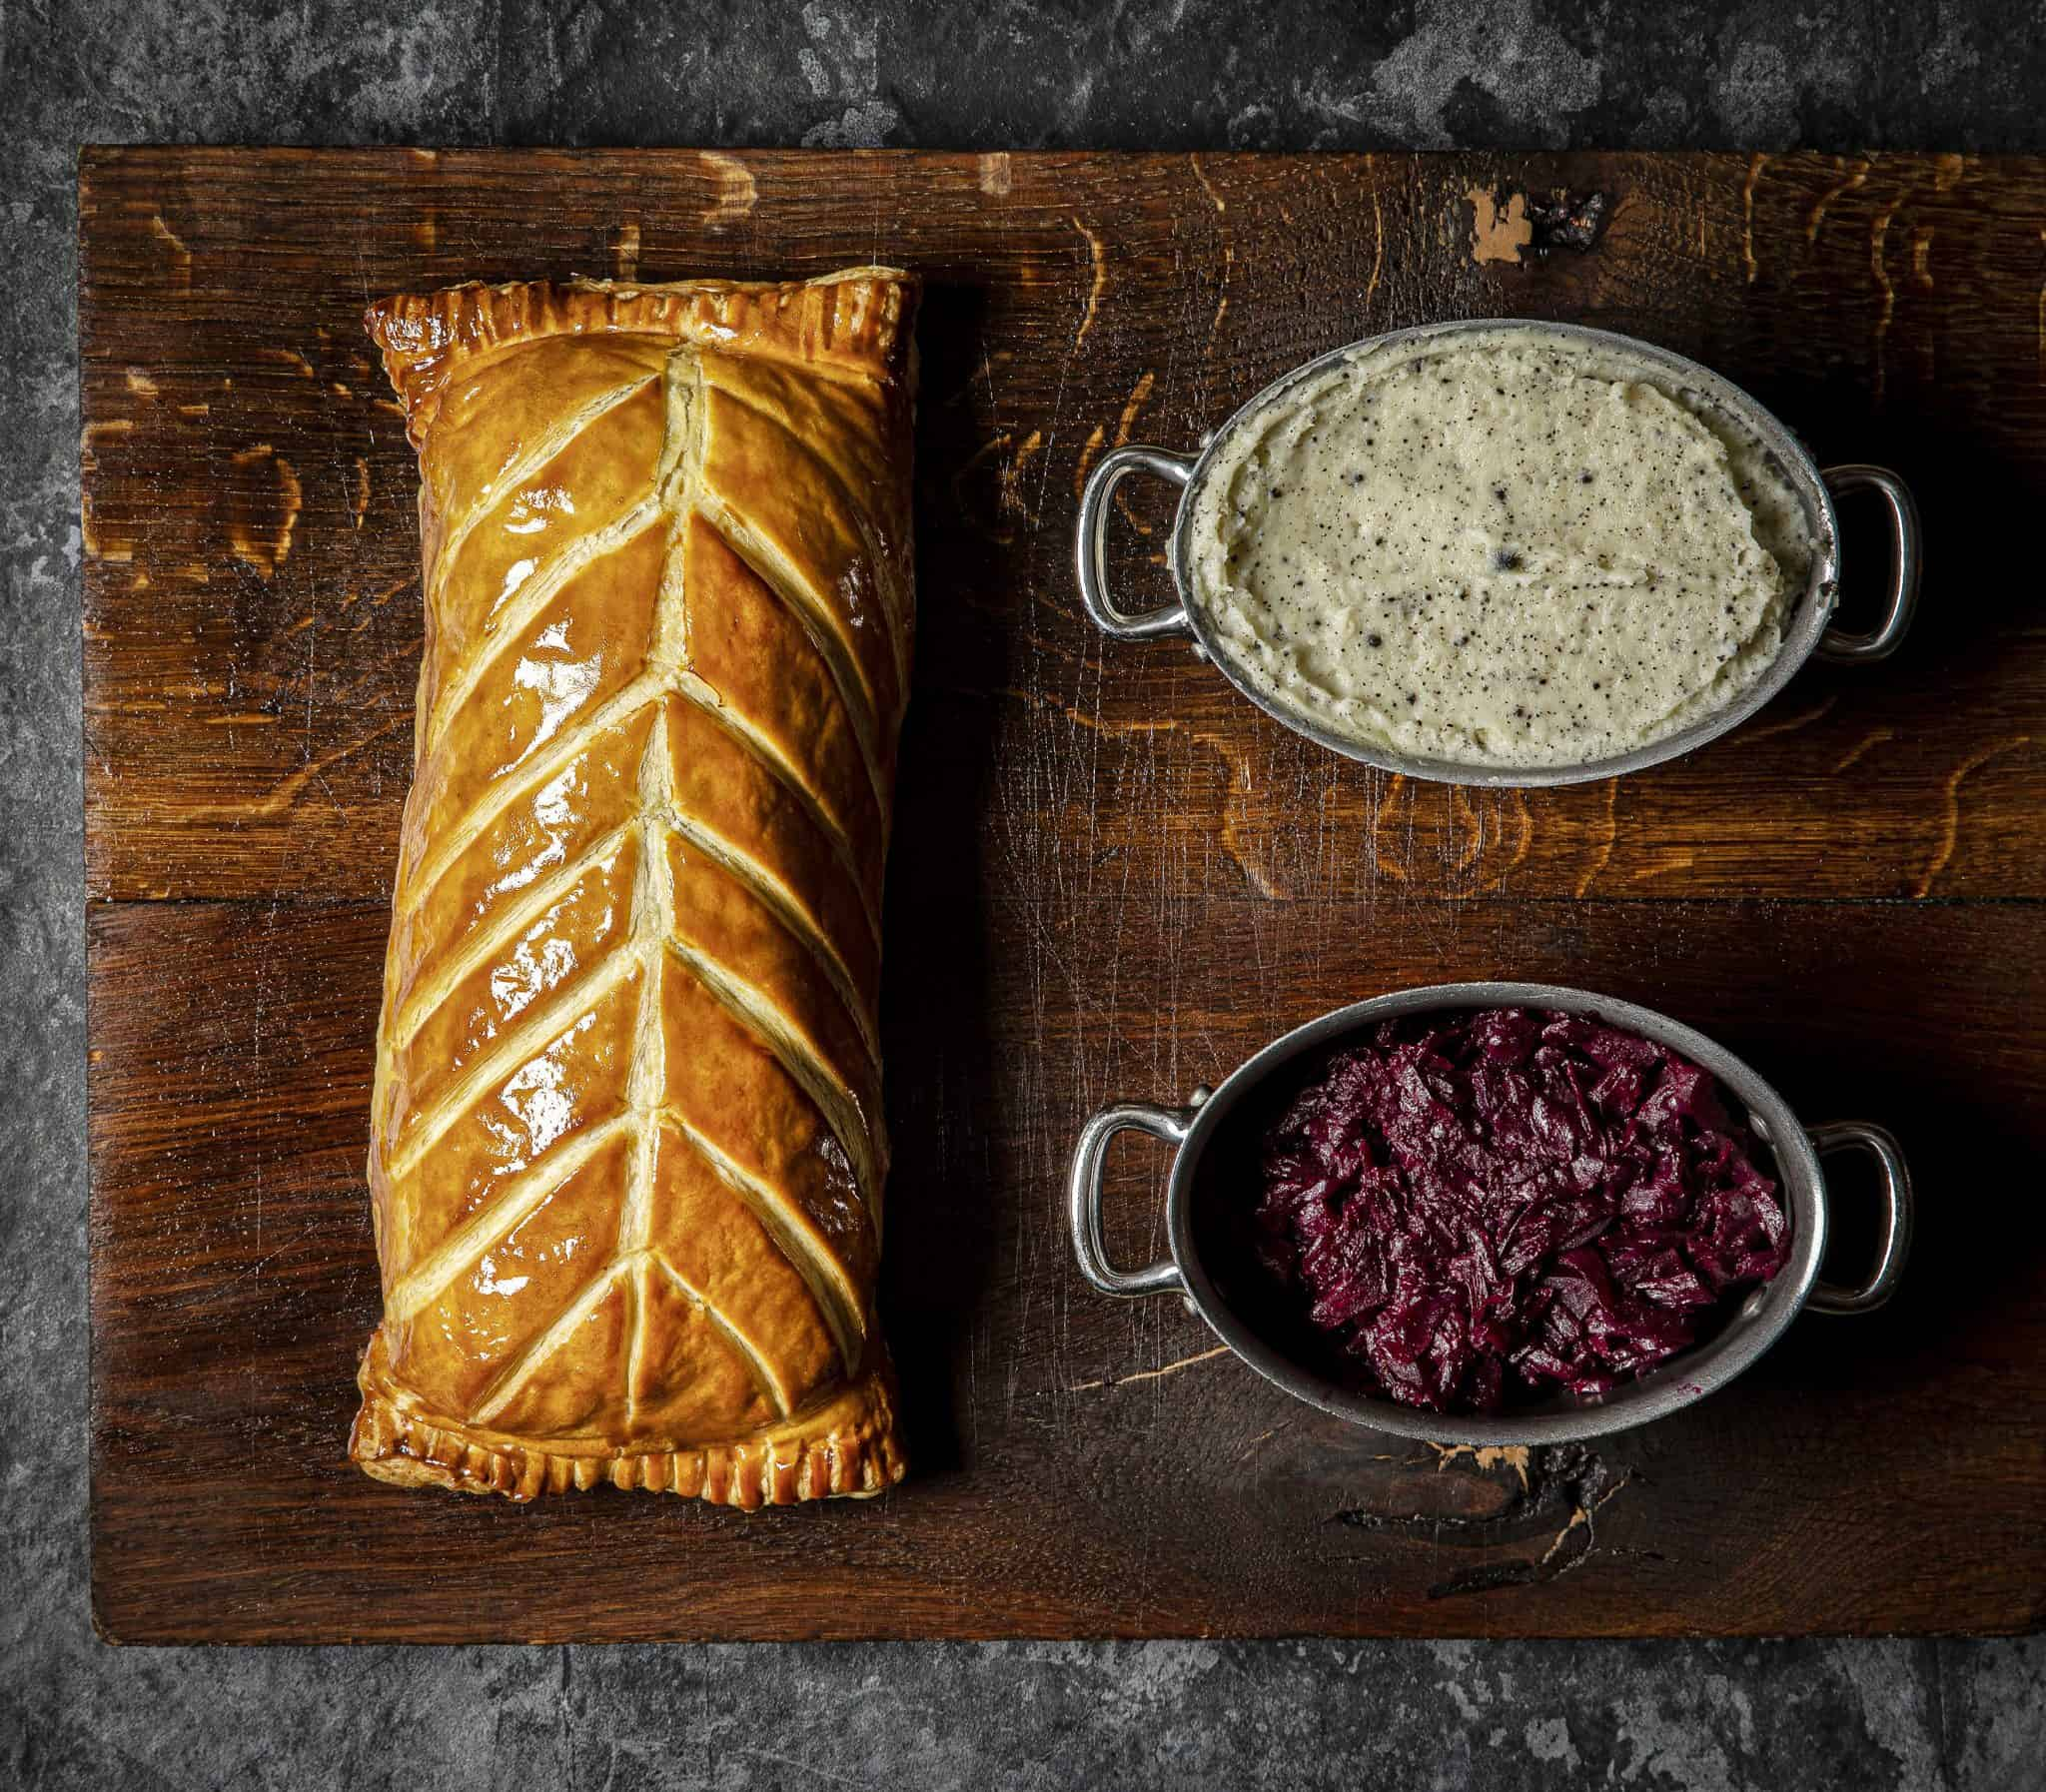 The Game Bird venison wellington